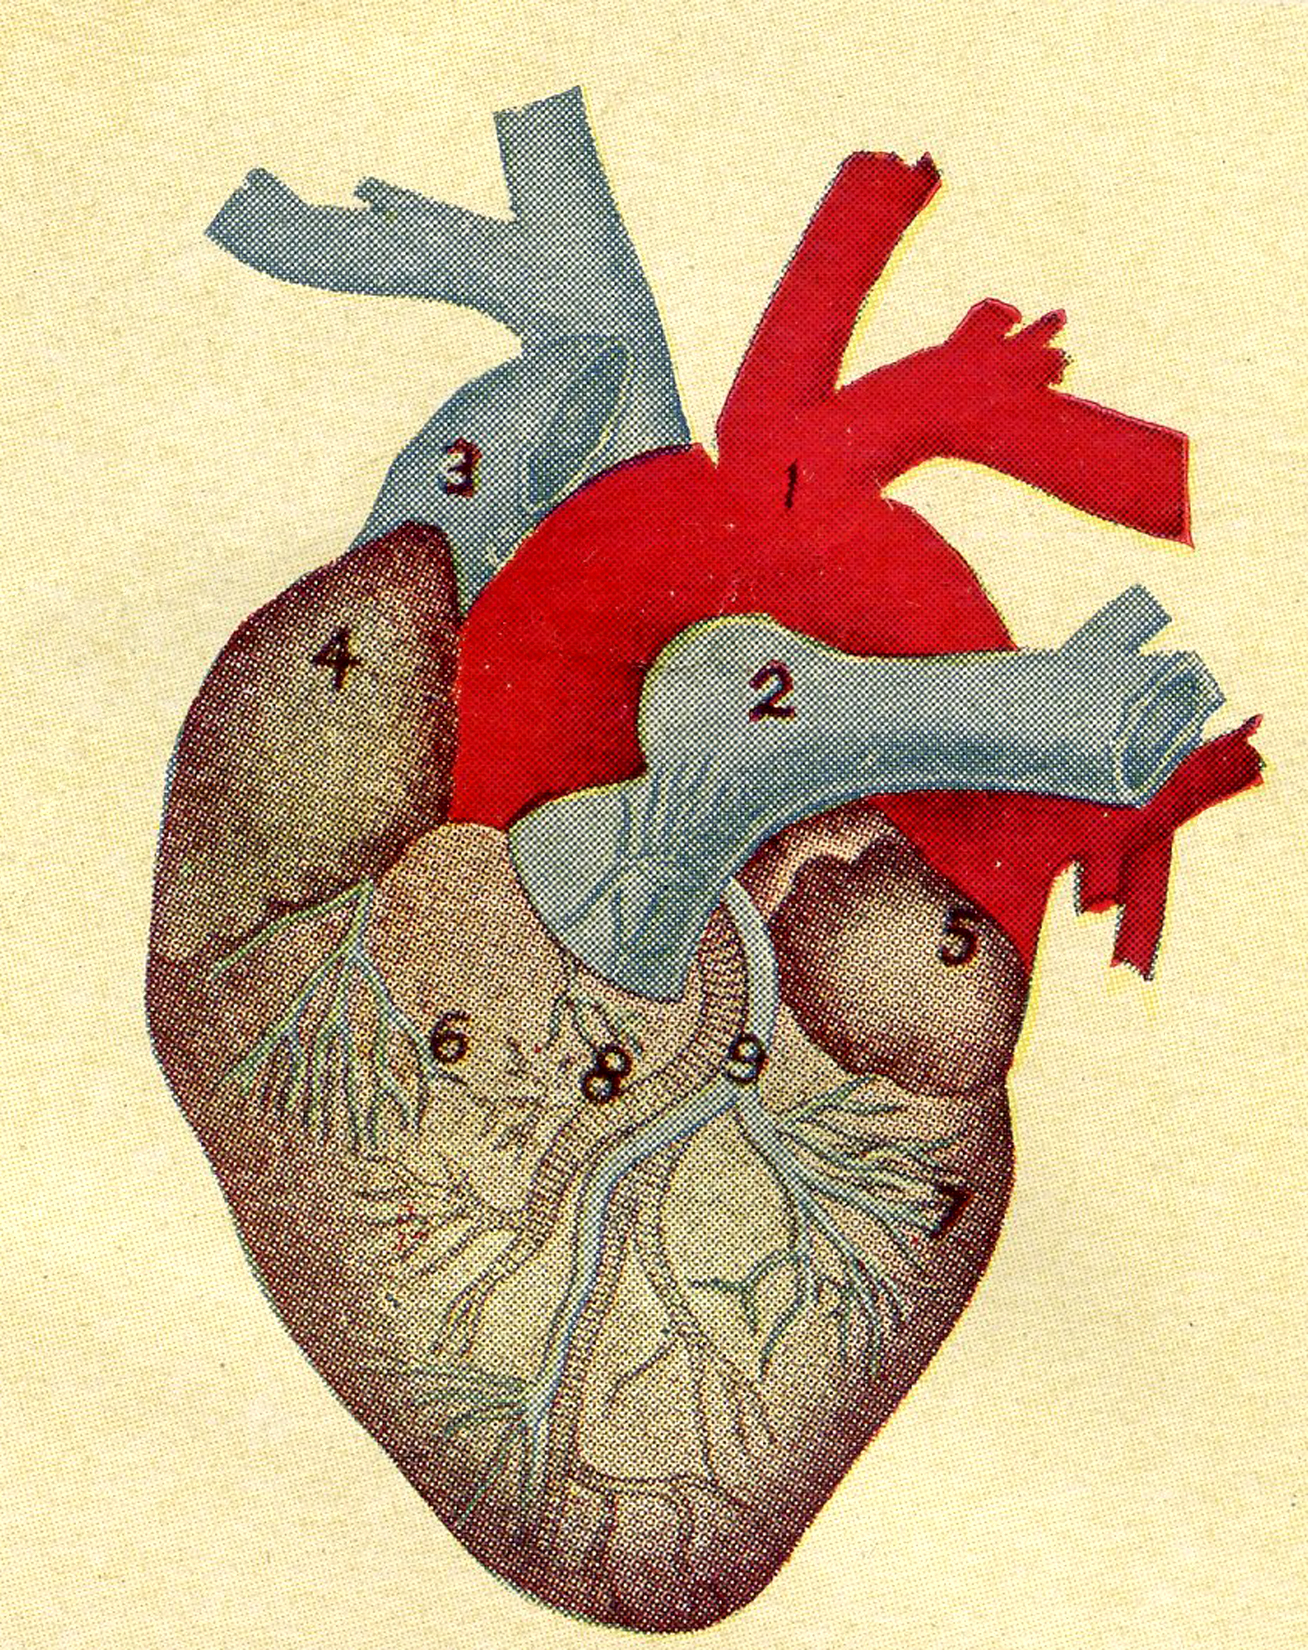 5 Anatomical Heart Pictures The Graphics Fairy